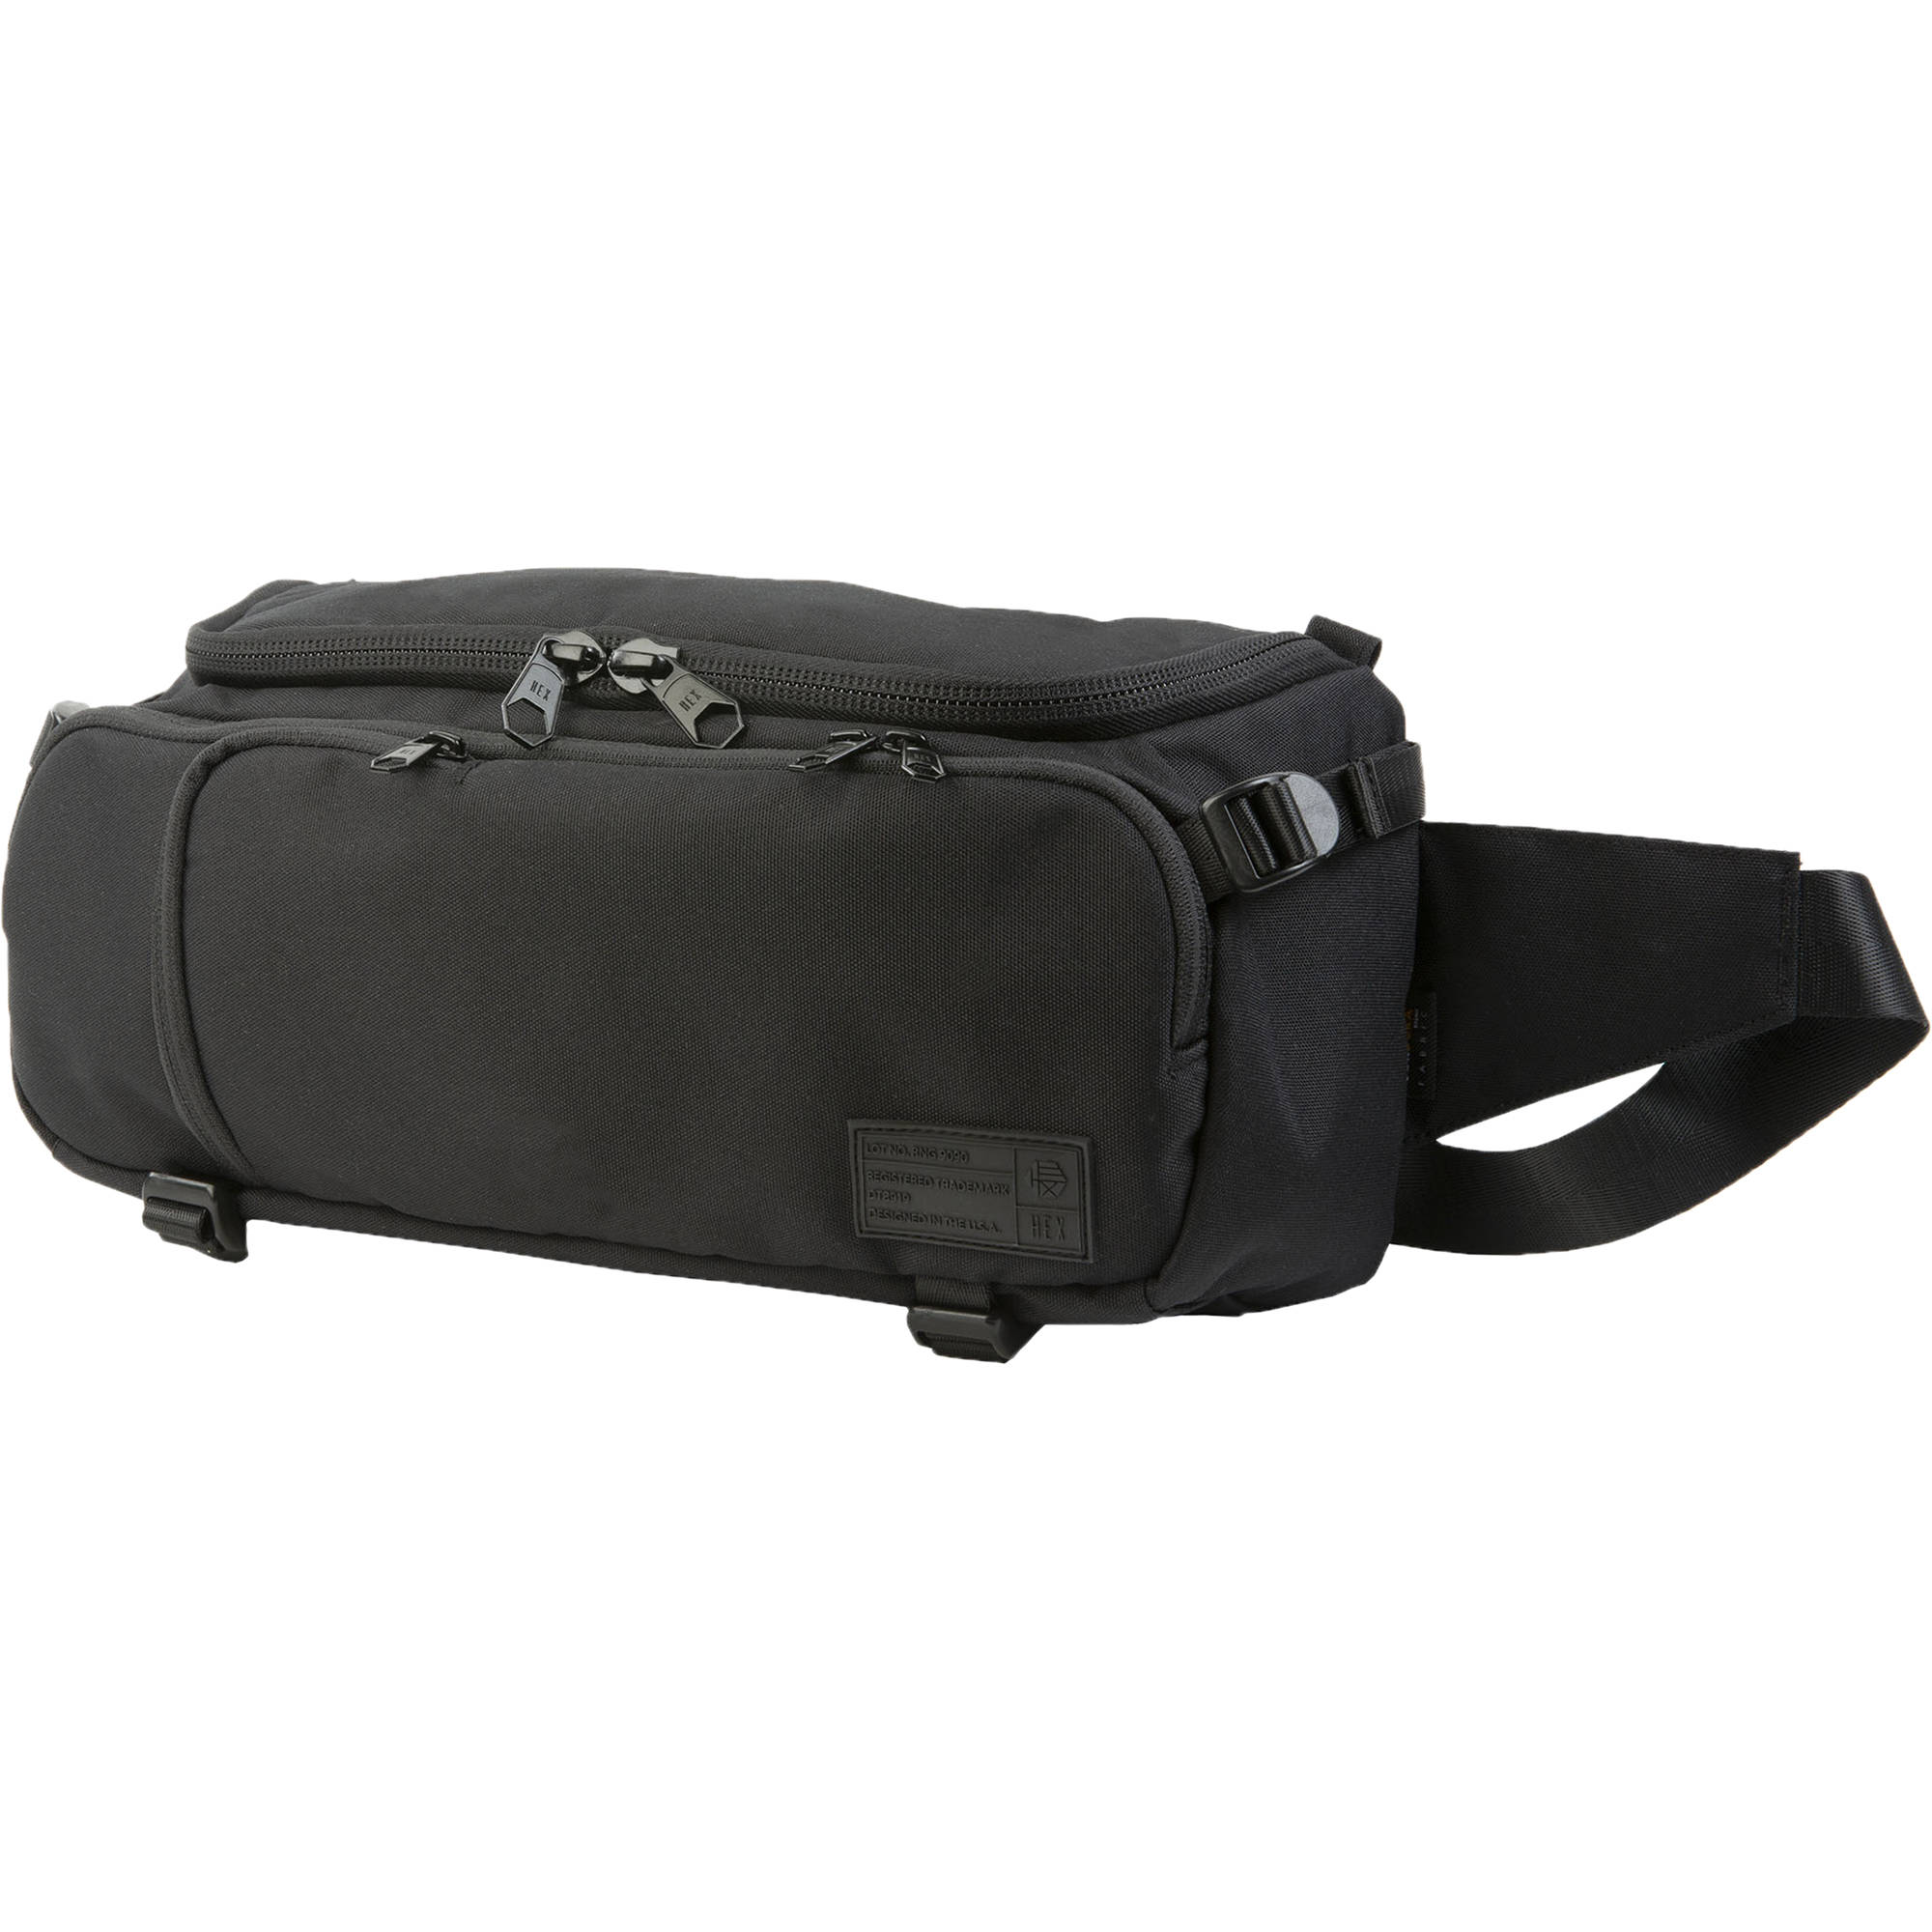 Hex Ranger Dslr Sling Bag Black